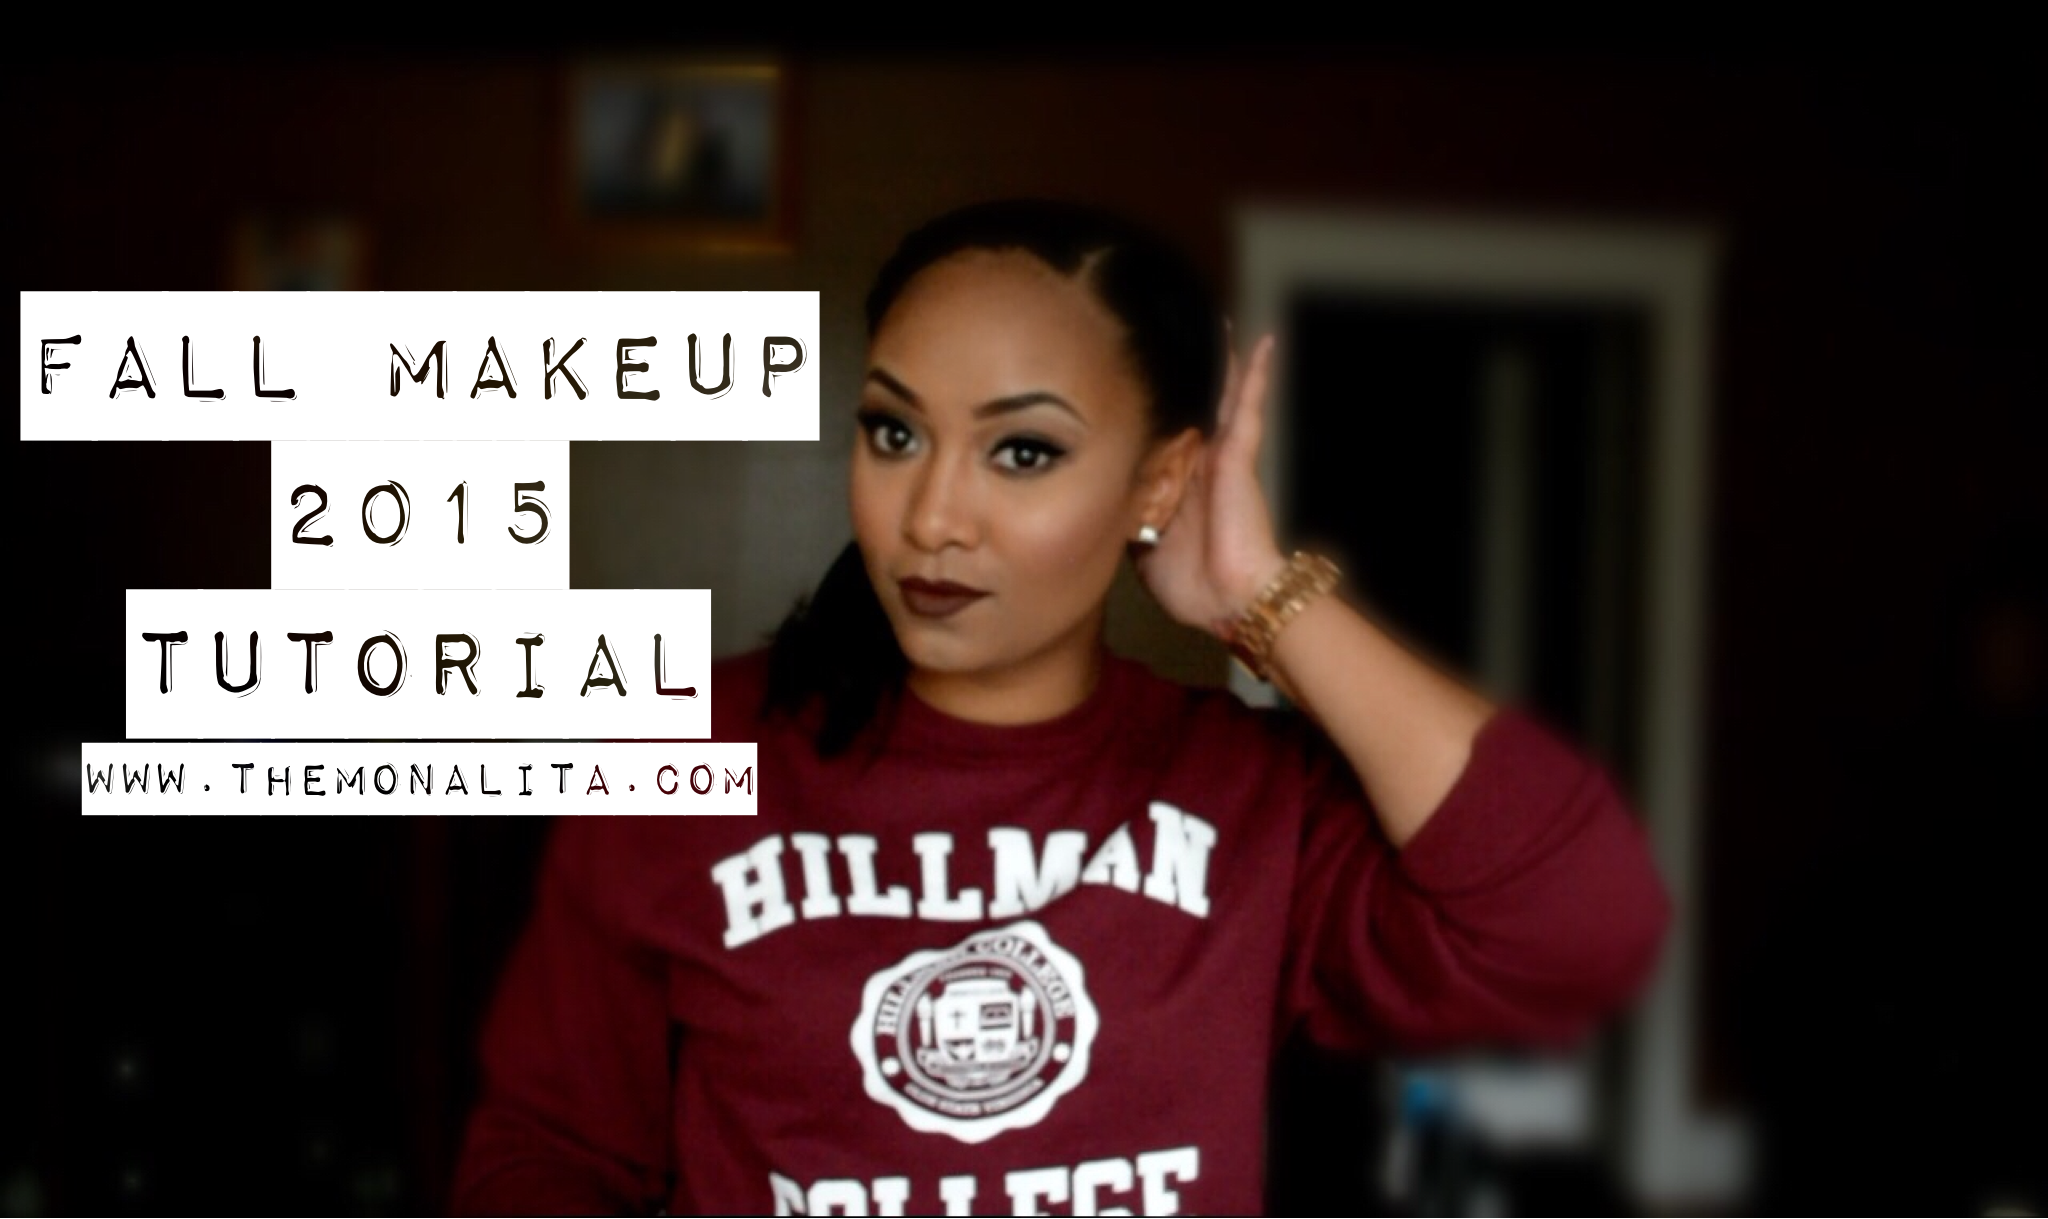 fall makeup 2015 tutorial